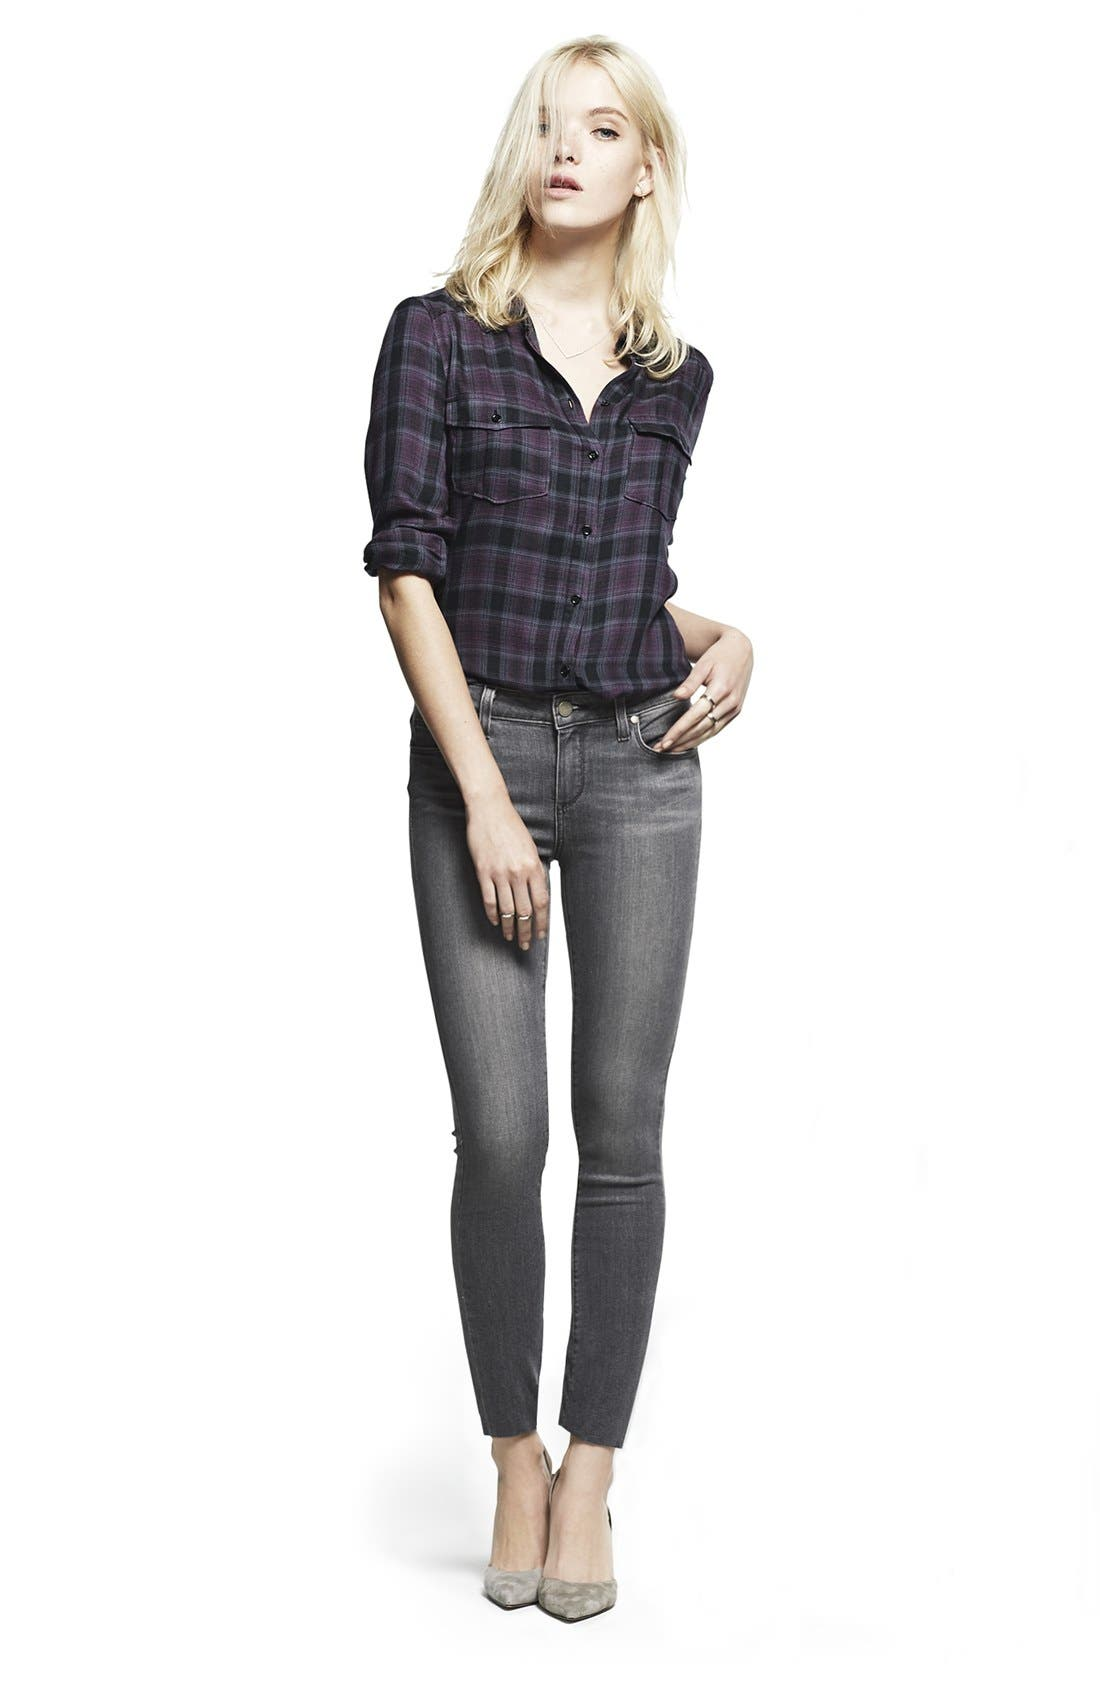 PAIGE, Transcend - Verdugo Ultra Skinny Jeans, Alternate thumbnail 5, color, SILVIE